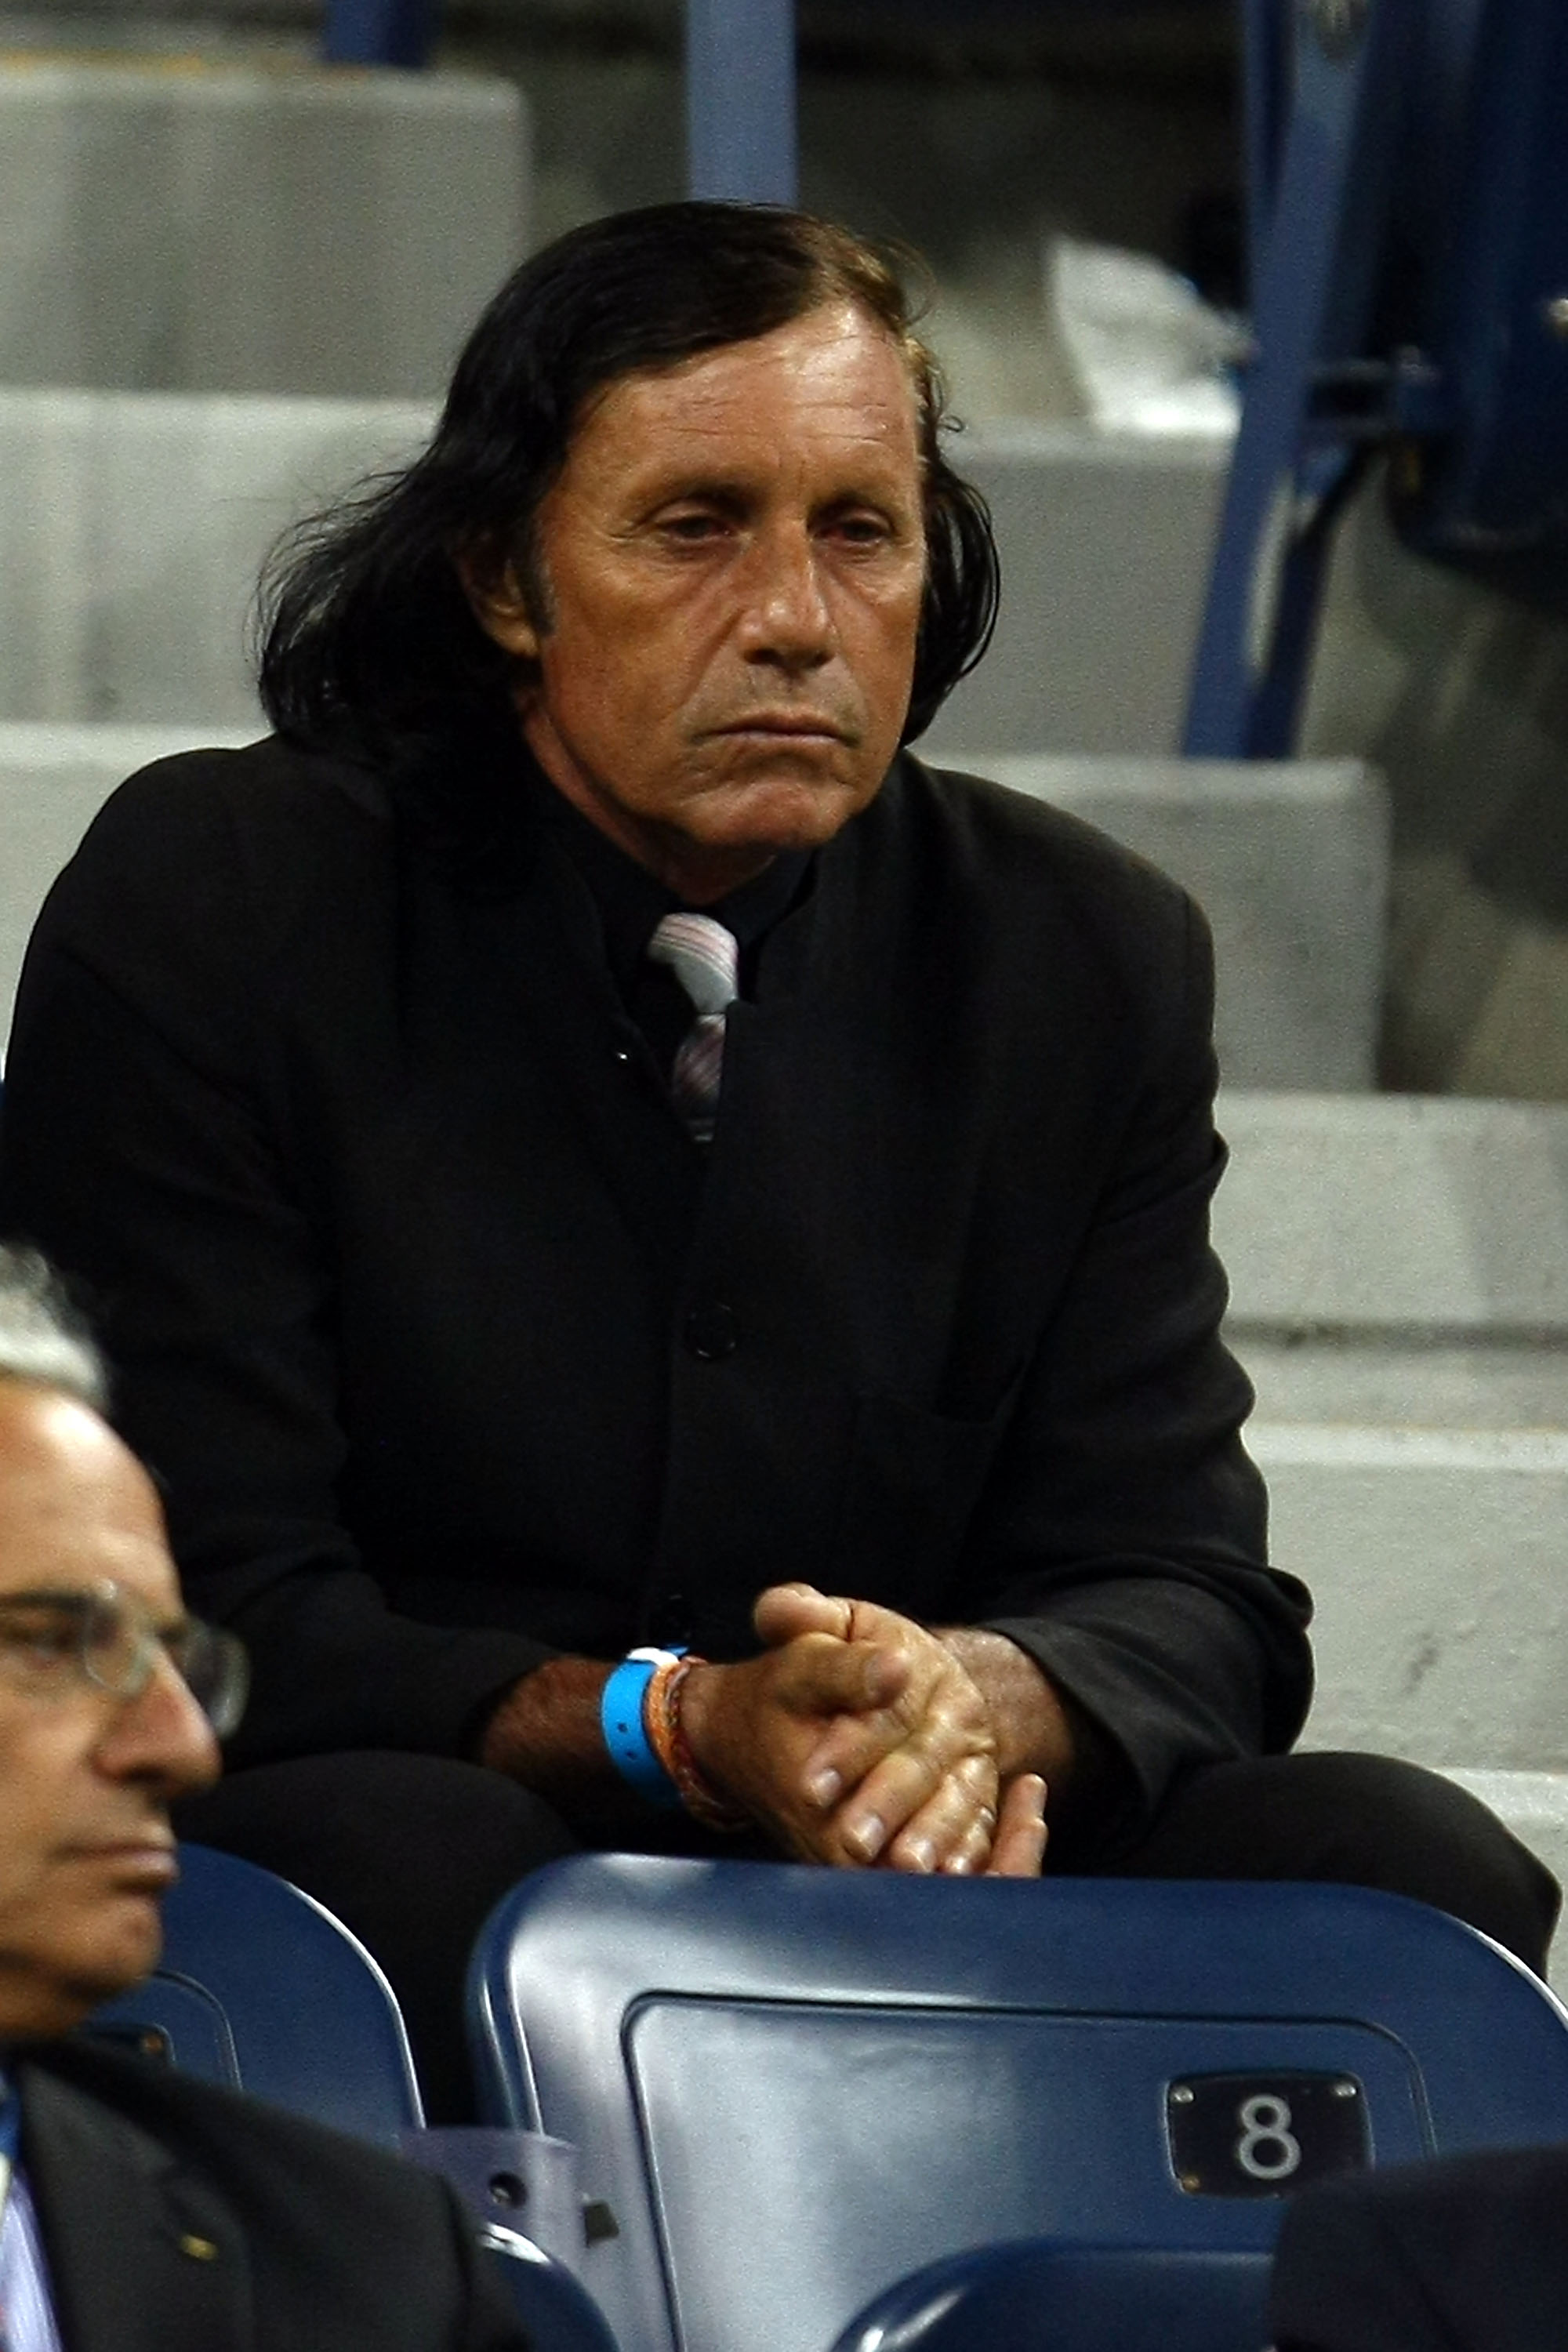 NEW YORK - SEPTEMBER 09:  Former tennis player Guillermo Vilas (R) attends the night session of day ten of the 2009 U.S. Open at the USTA Billie Jean King National Tennis Center on September 9, 2009 in the Flushing neighborhood of the Queens borough of Ne